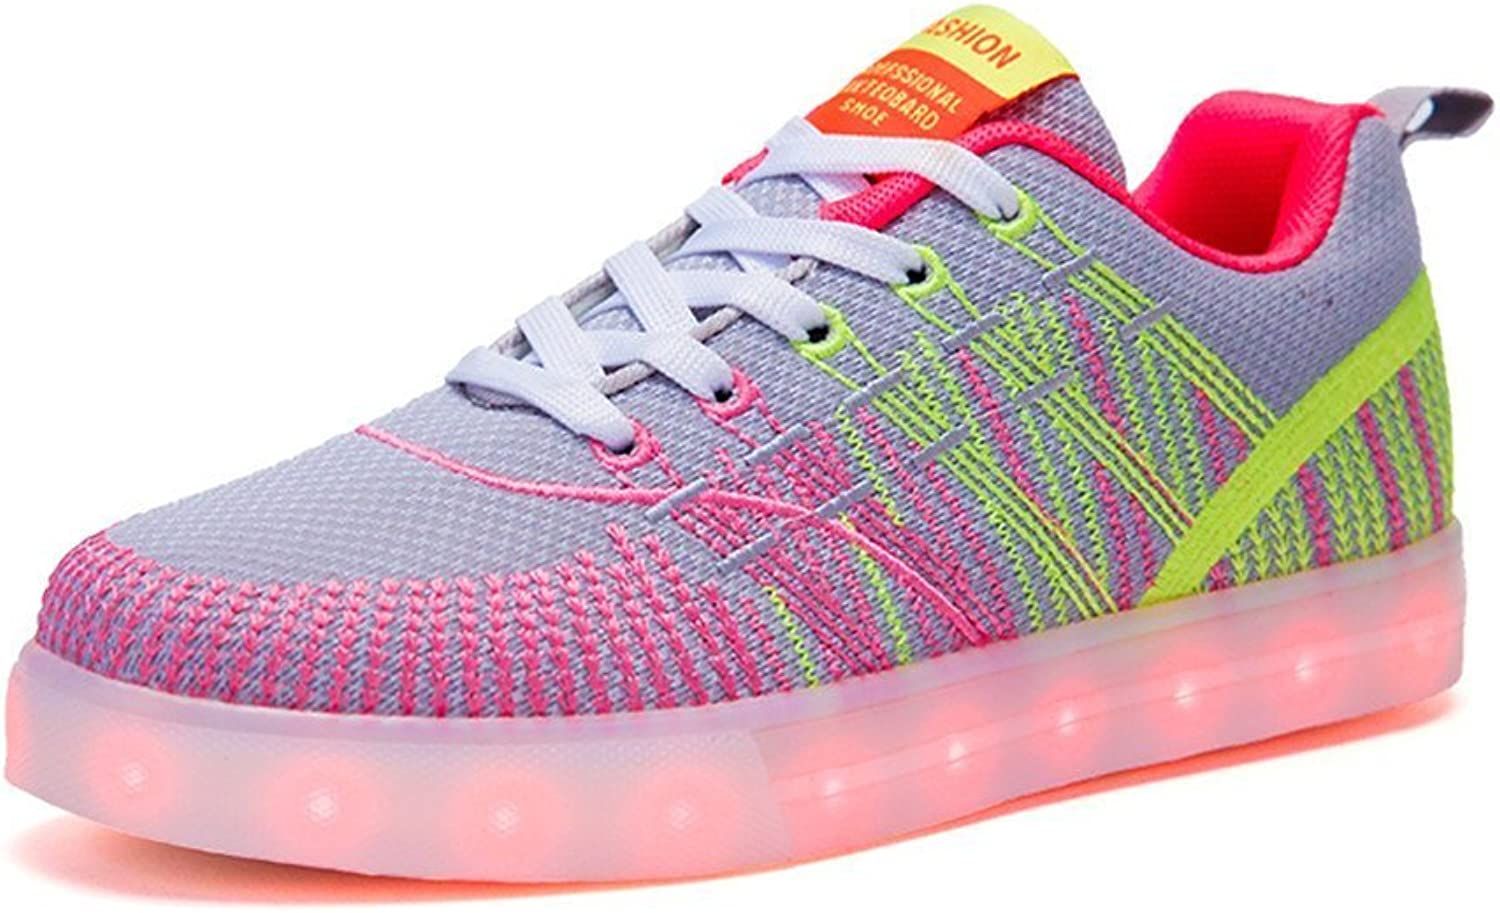 Believed Womens Fashion Led Lights up Sneakers Luminous shoes